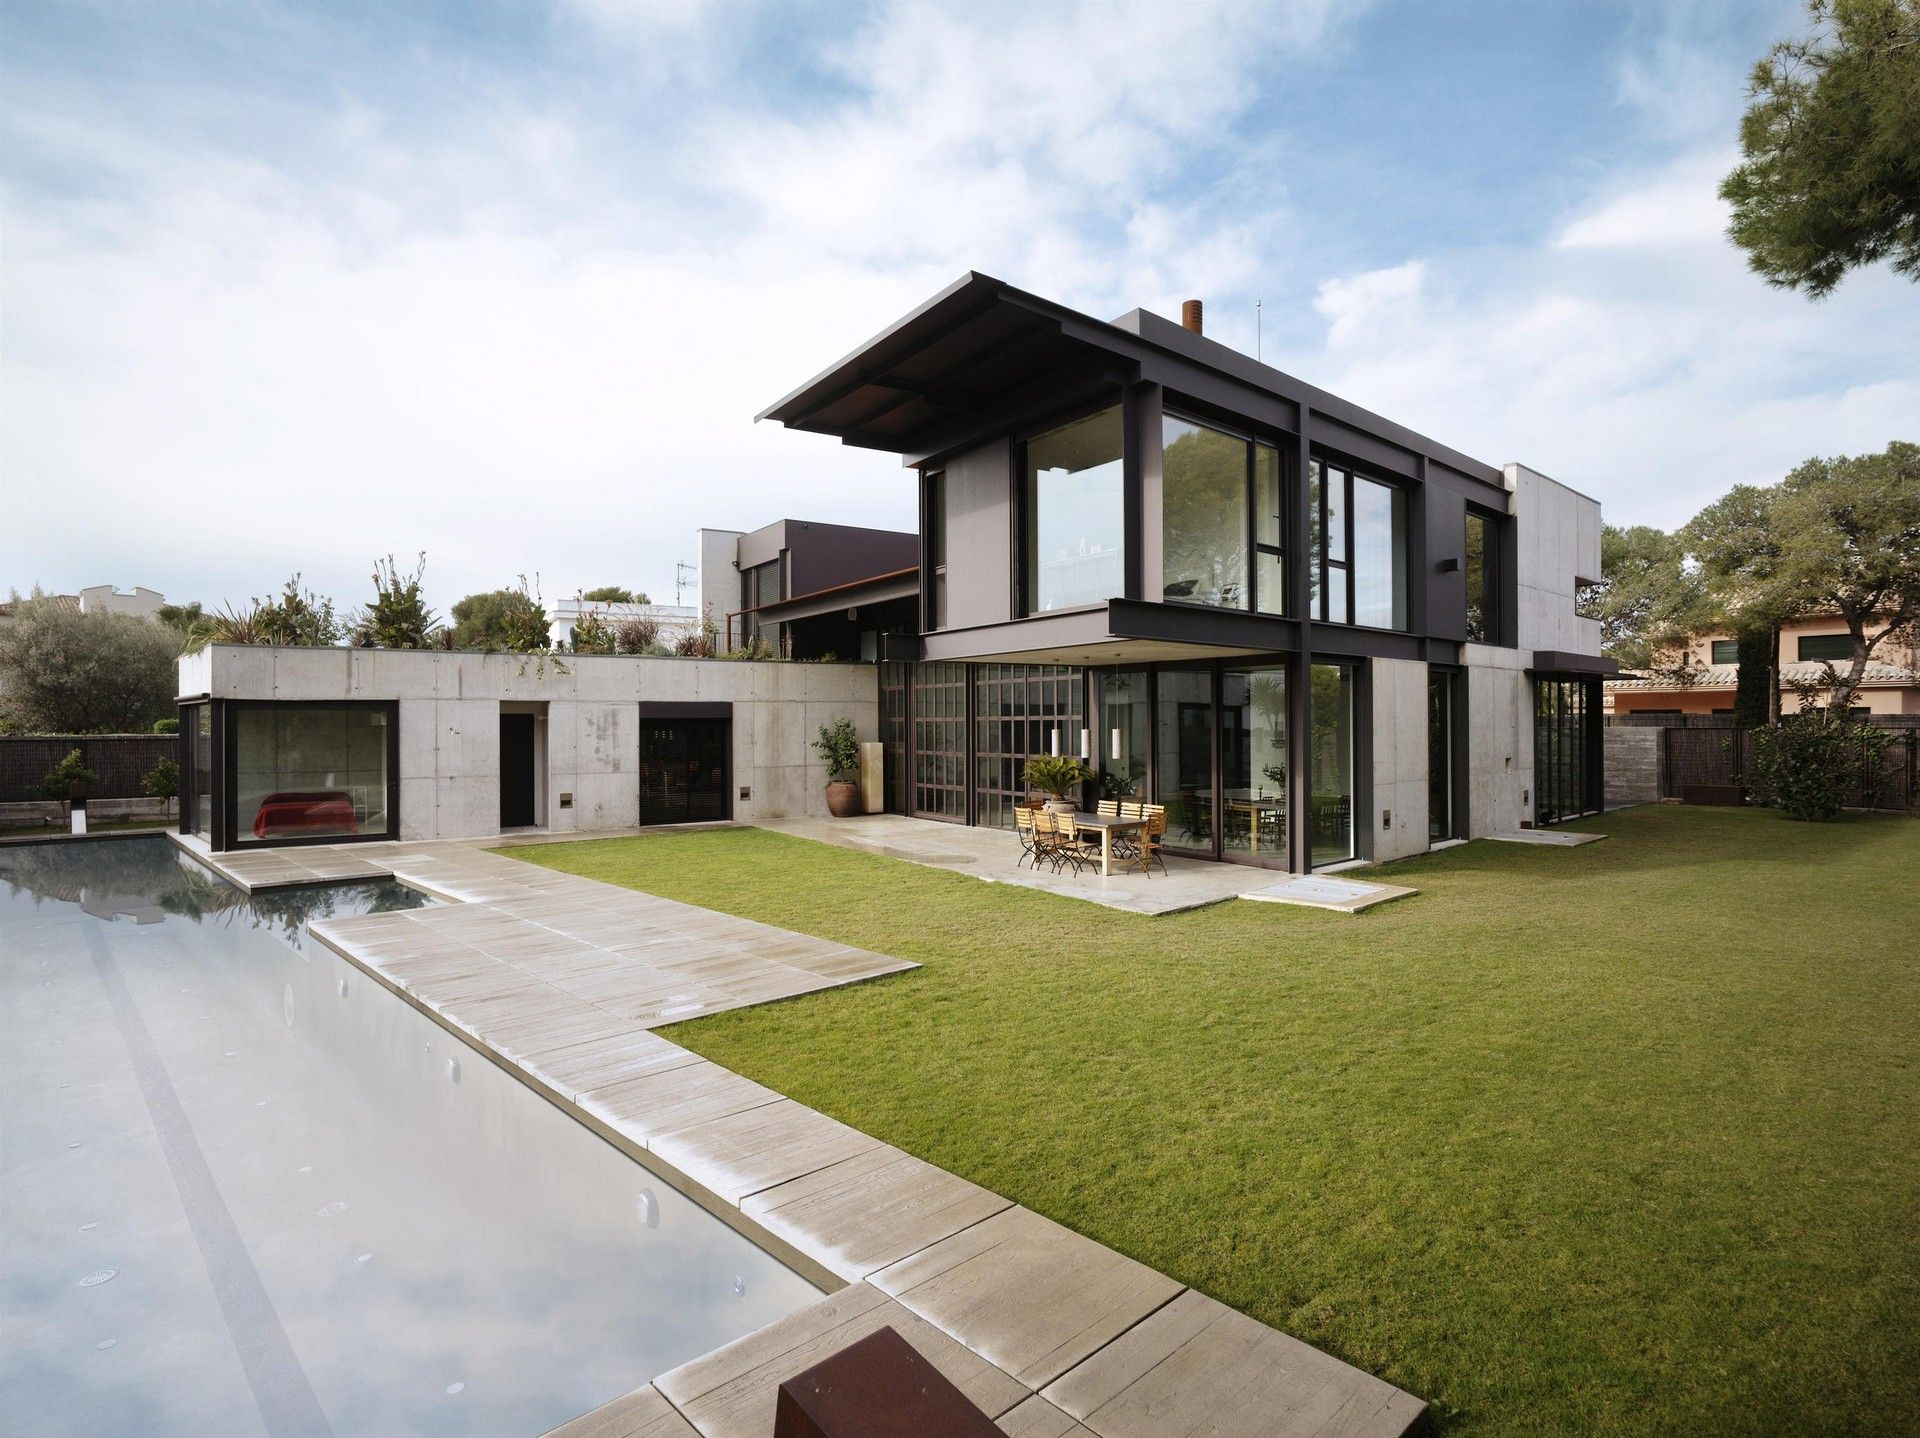 Tom Kundig Of Seattle Based Olson Architects Designed Studio Sitges As The Home And Workplace A Photographer His Family In Coastal Town